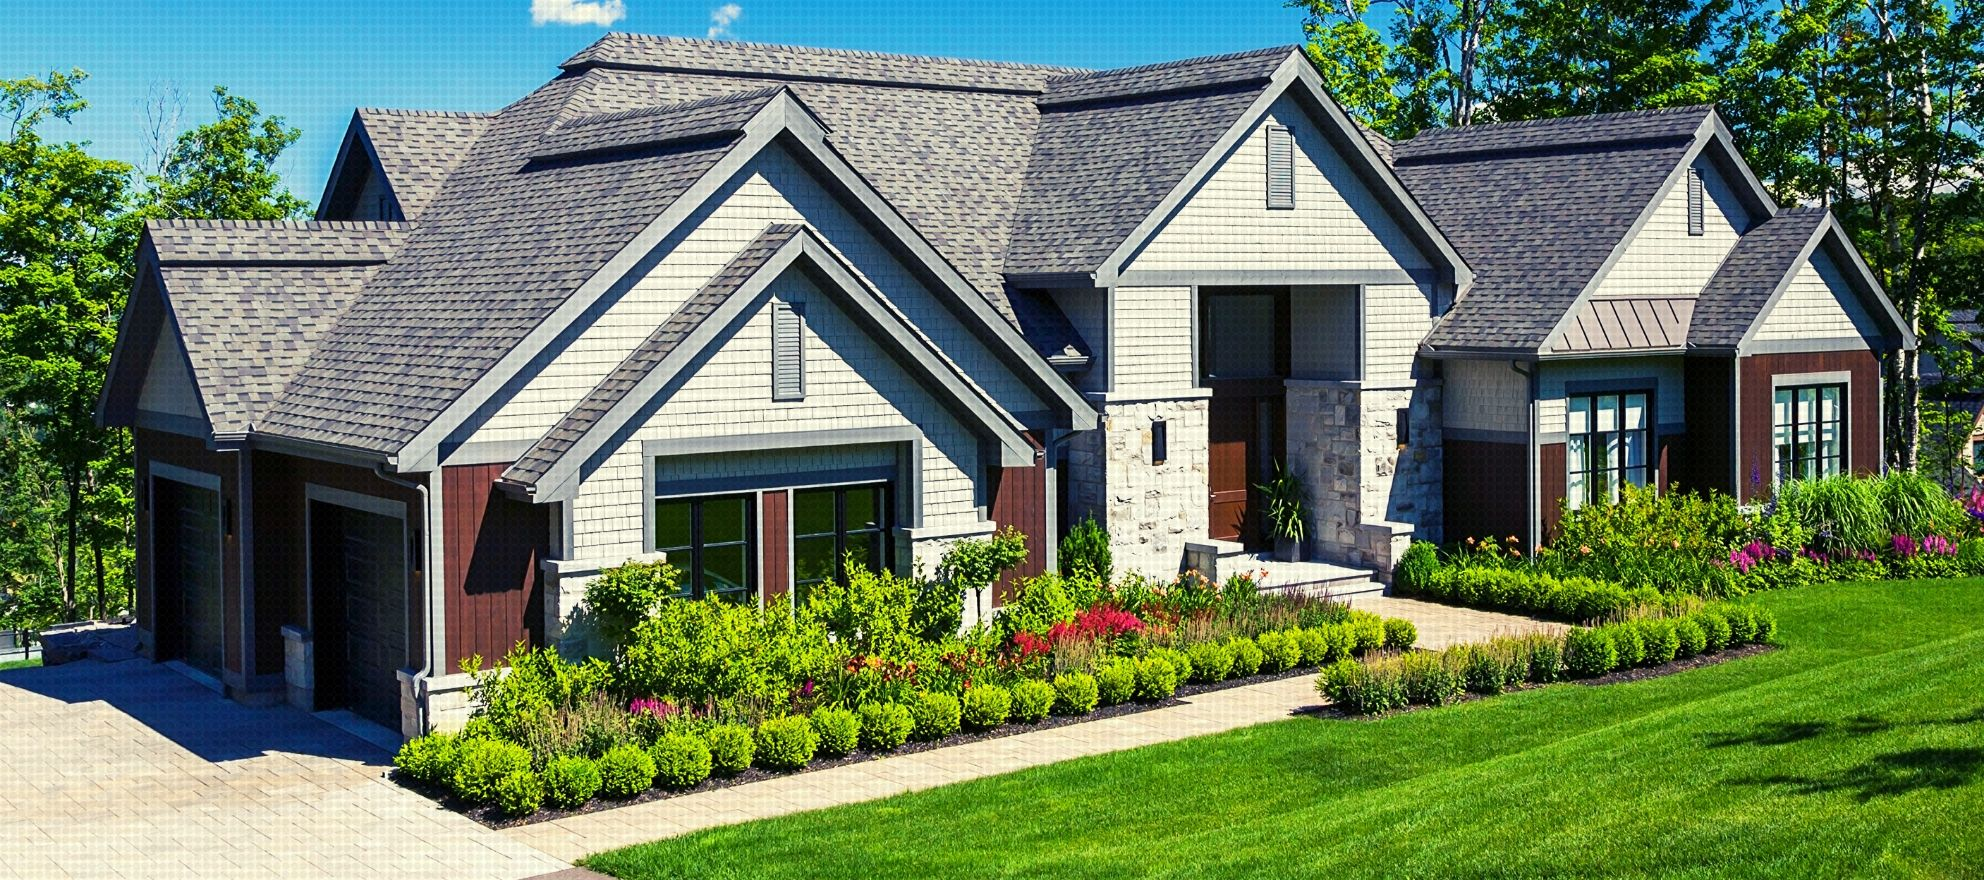 Wilted curb appeal? Try Tilly's online landscape design services